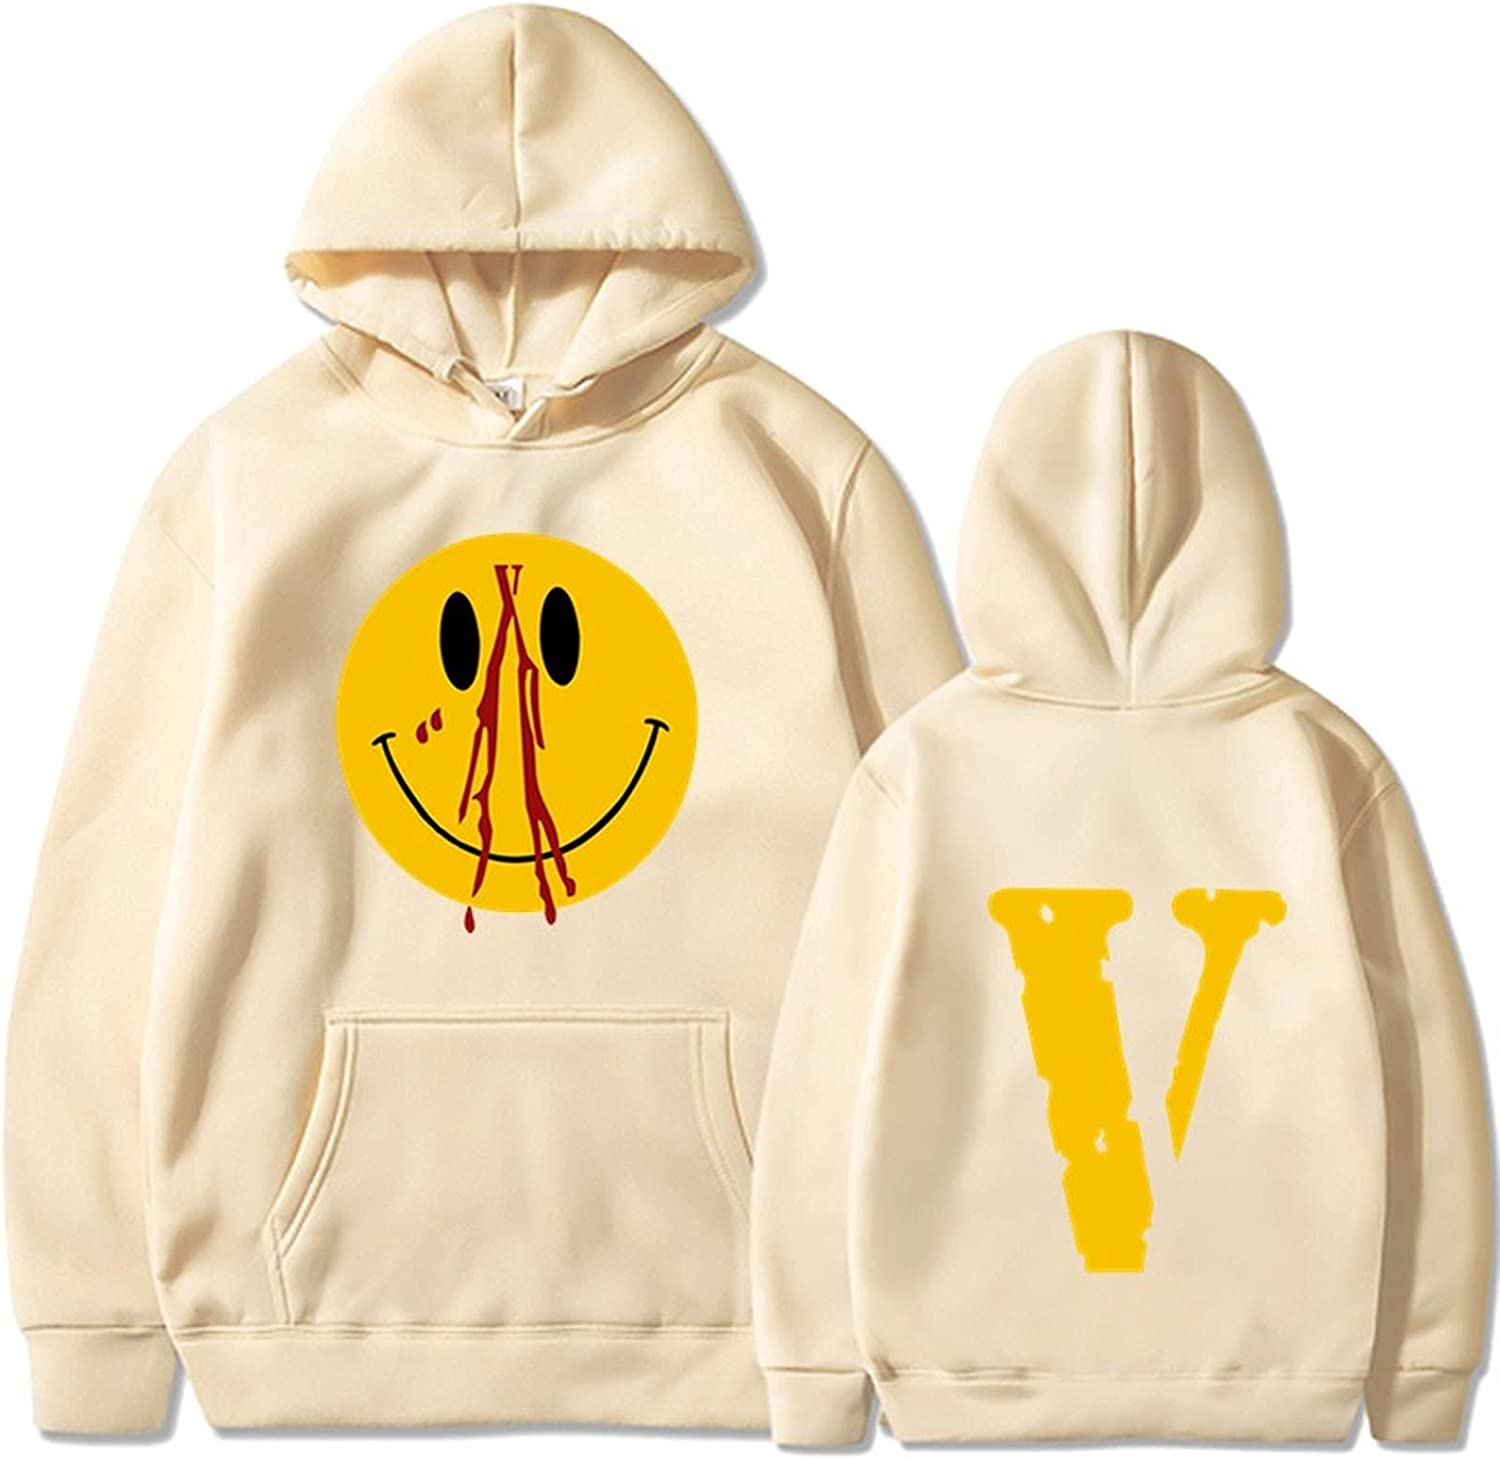 Aluo Vlone Fashion Sweatshirts for Men and Women Hip Hop Hoodies Long Sleeve Big V Letter Printed Trend Casual Loose Pullover